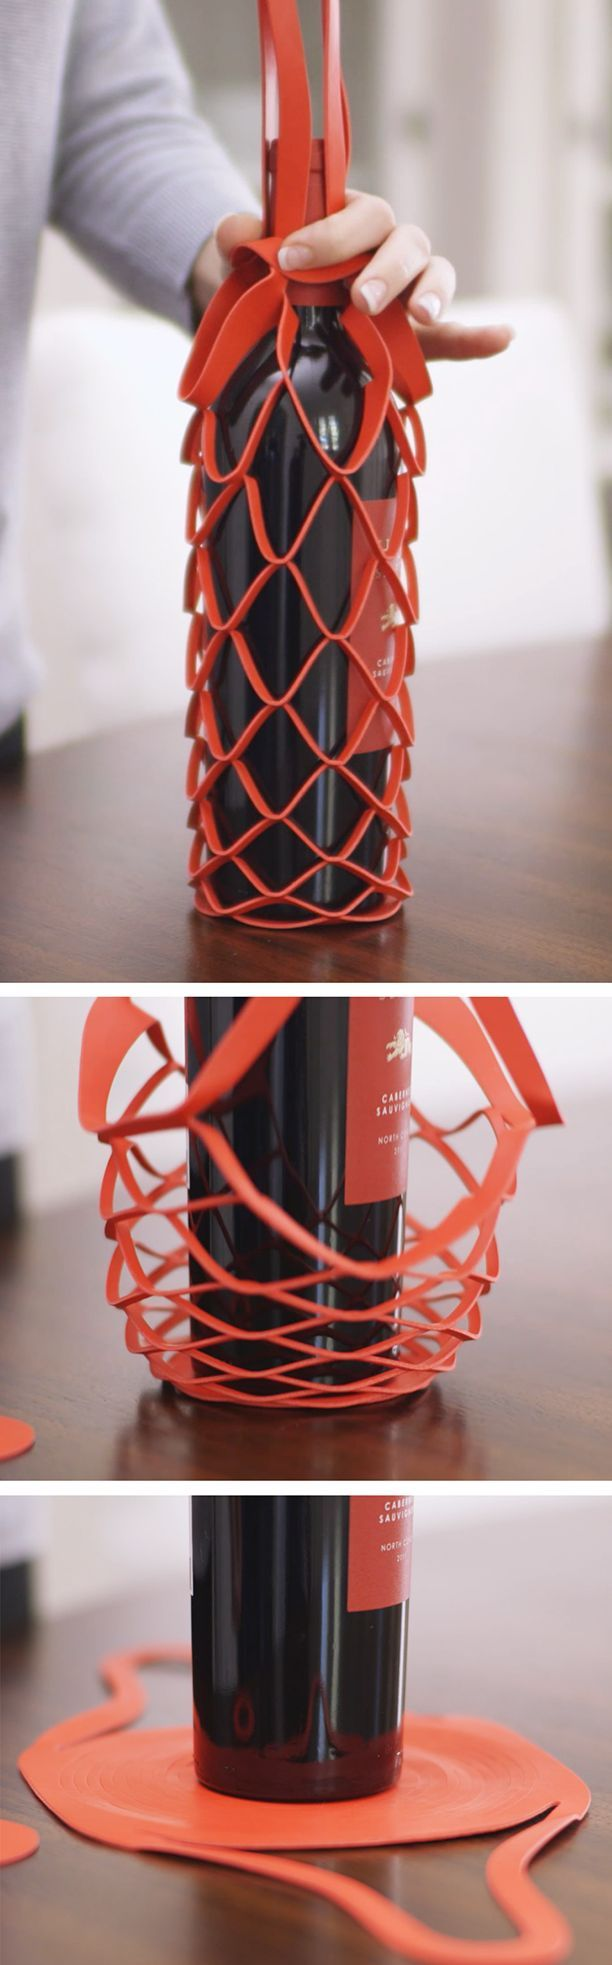 Our Expandable Wine Carrier is sure to be the perfect hostess gift or a conversation starter at any holiday party!